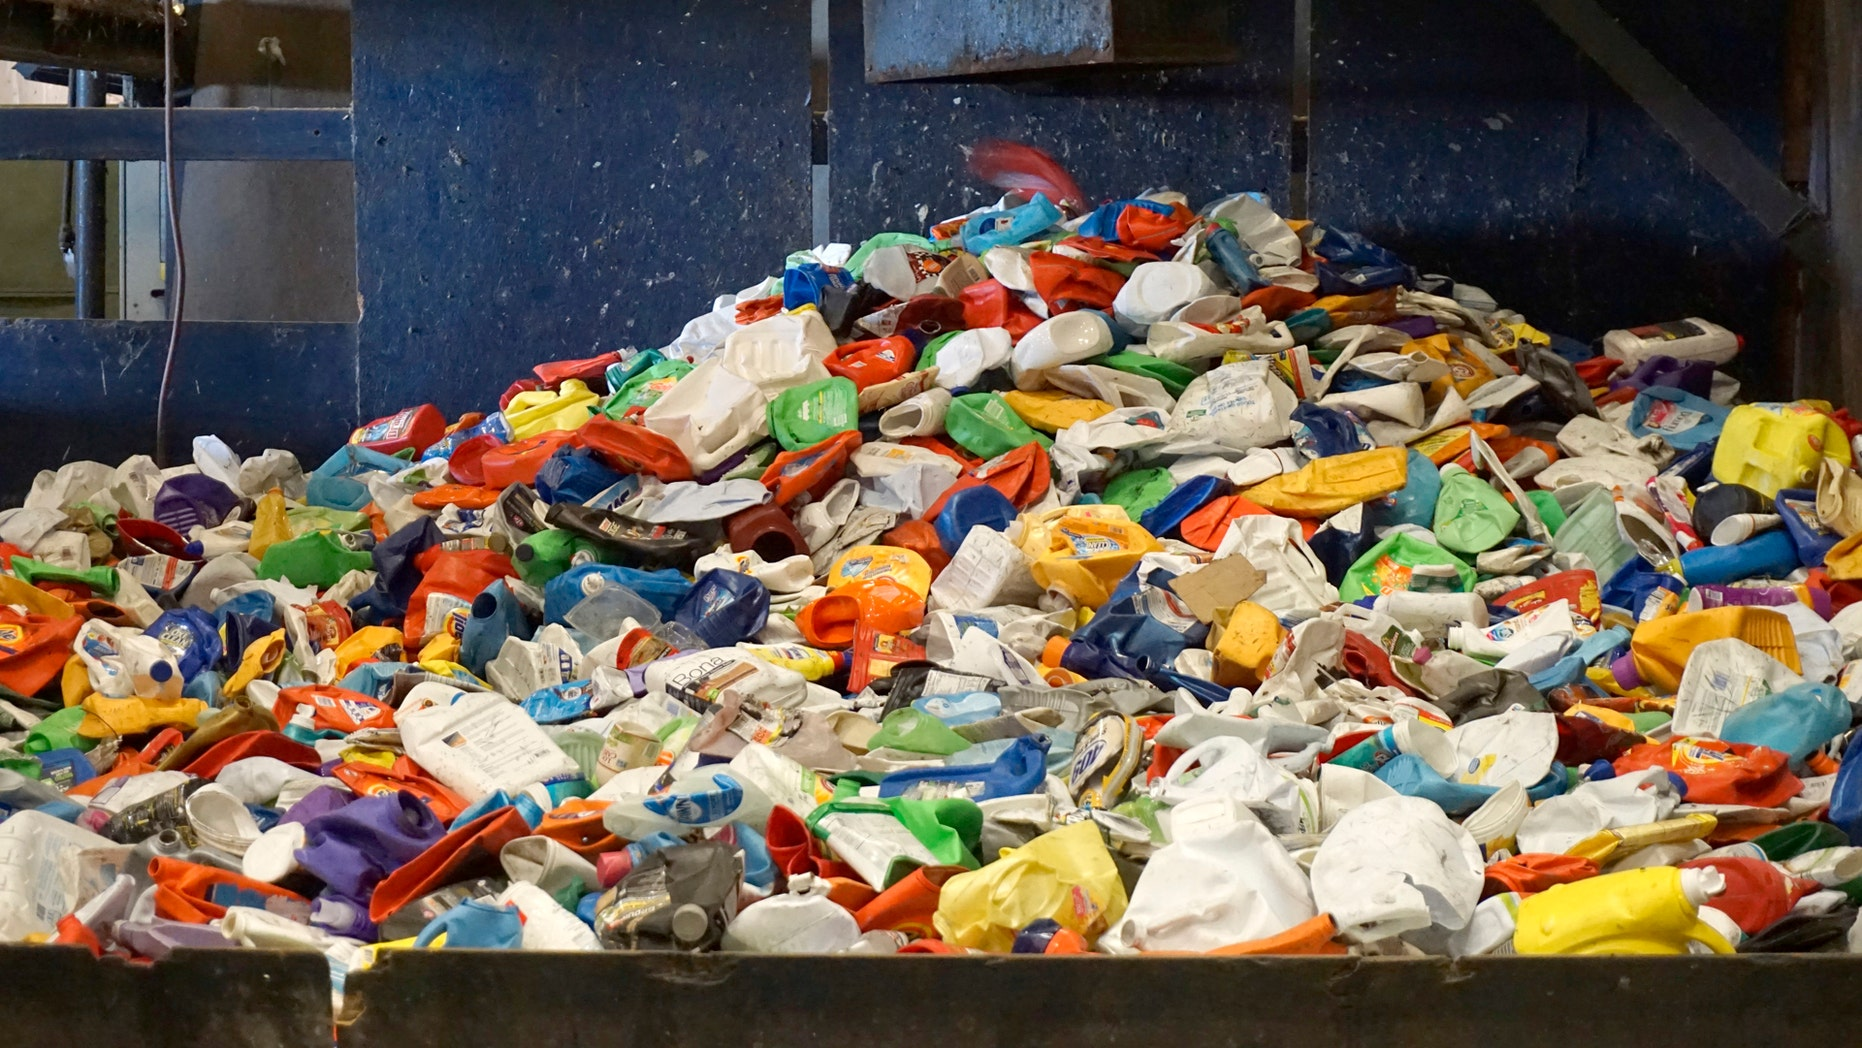 This January 2019 photo provided by the Institute of Scrap Recycling Industries shows plastic materials sorted from a residential recycling stream at a material recovery facility in Austin, Texas. Recycling systems are facing challenges in many places, but some experts say it's still growing. And they say dual-stream recycling _ in which you separate recyclables before they're collected _ is hitting its stride. (Institute of Scrap Recycling Industries via AP)